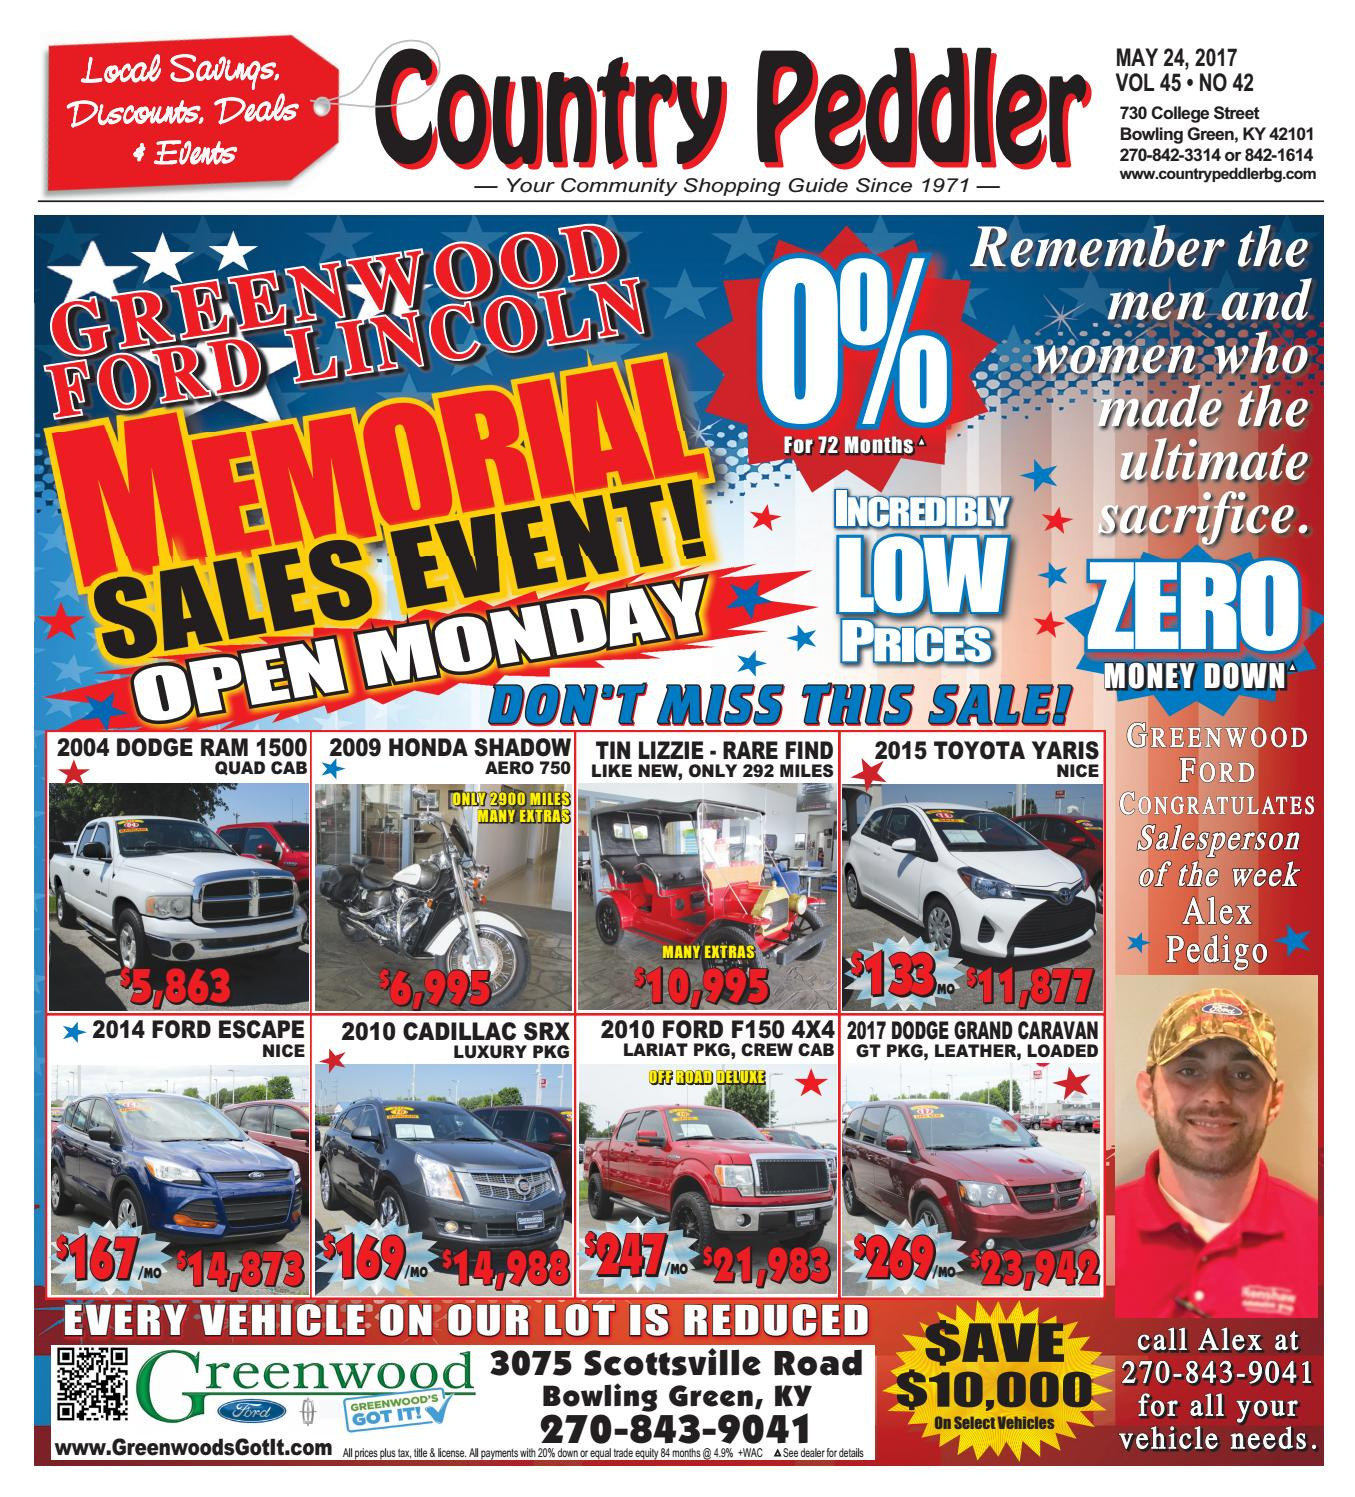 Country Peddler 5 24 17 by Country Peddler - issuu